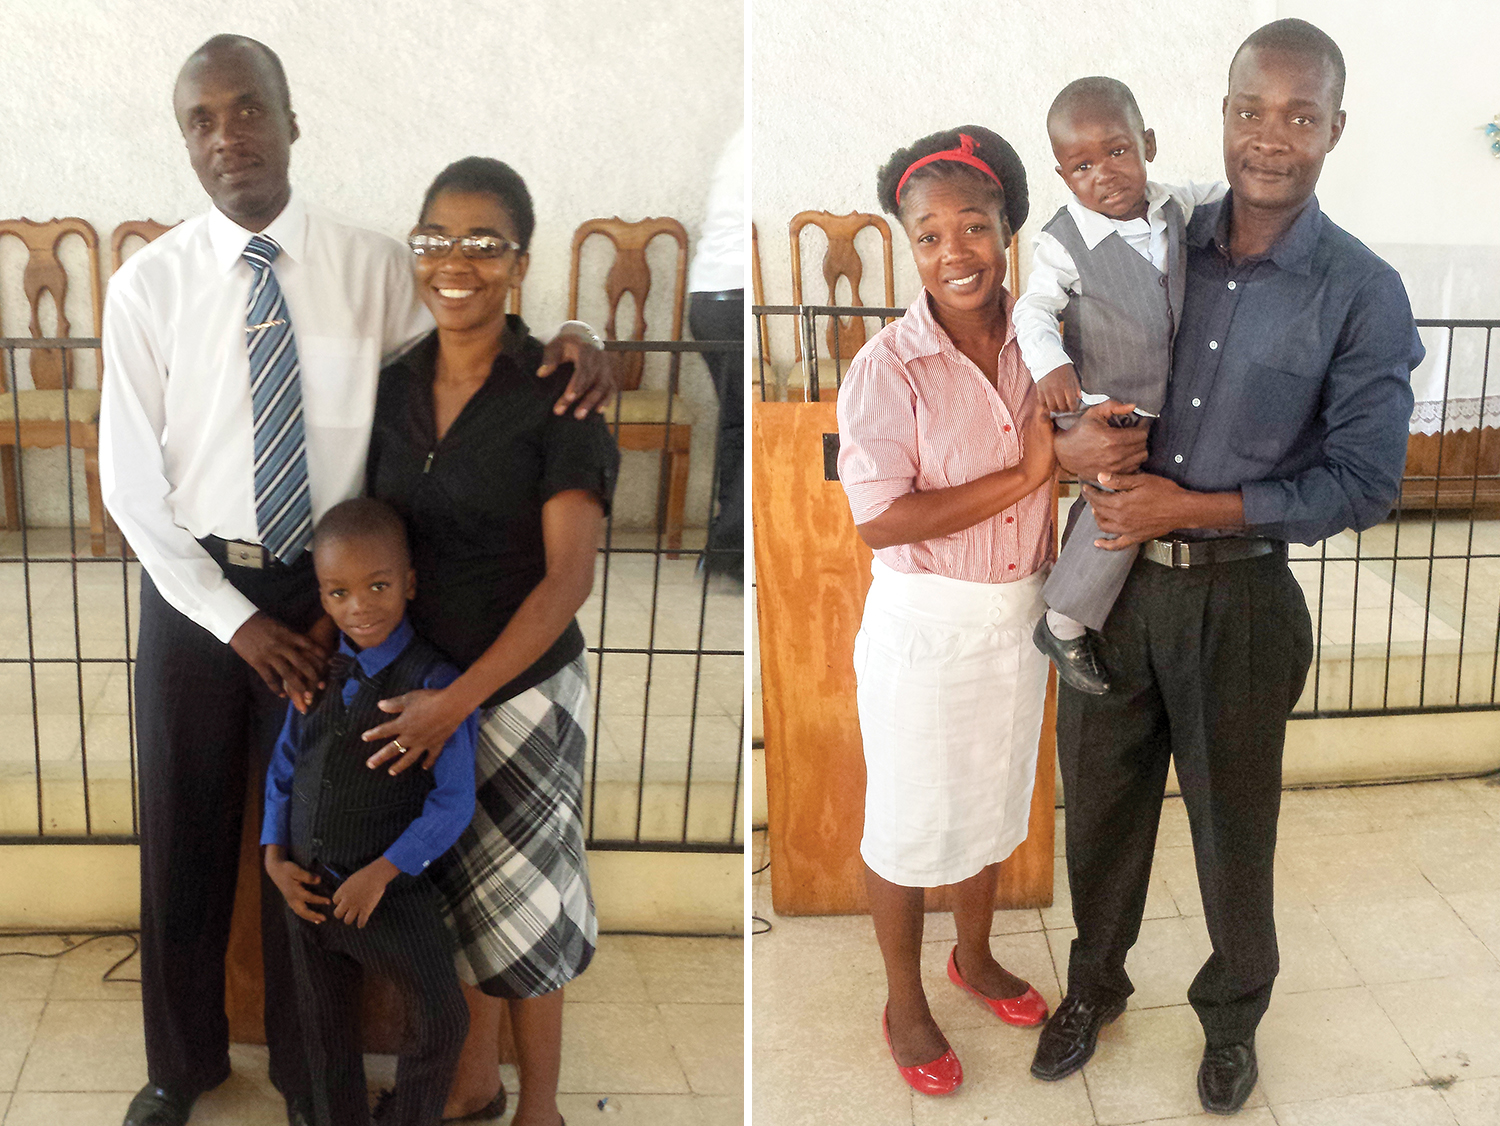 Left: The Paul family: Buteau, Joceline and Ruchama are thankful for the joy of the Lord. Right: The Delva family: Emmanuel, Lima, and Samuel covet your prayers for their New Missions church in Leogane.